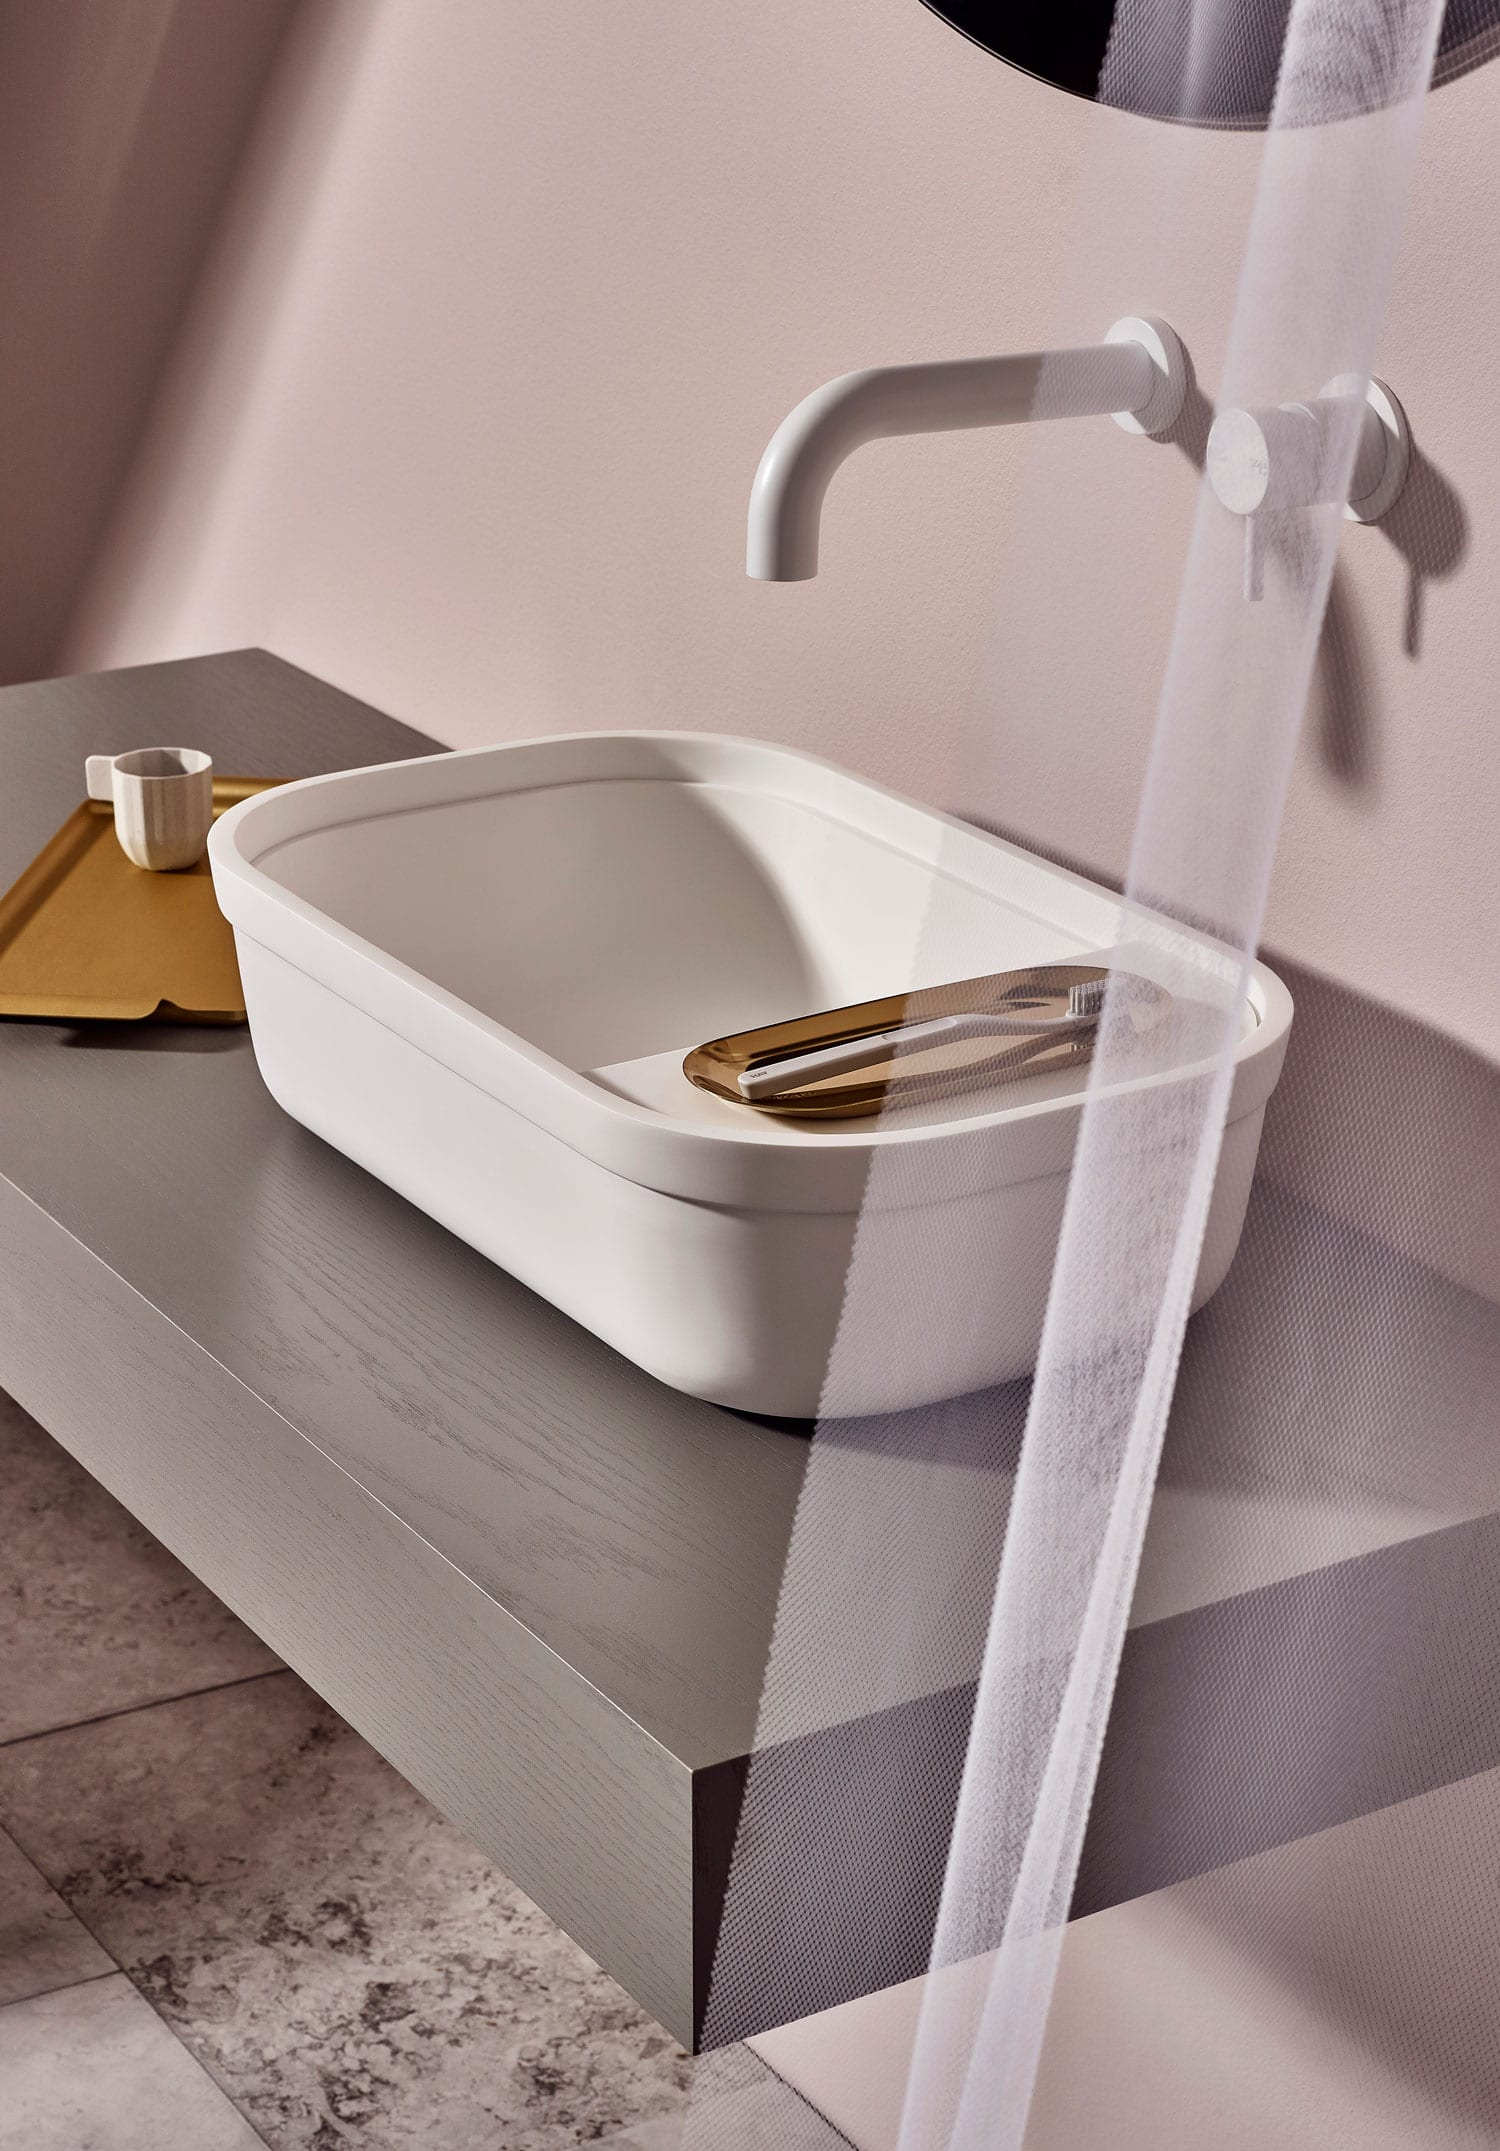 United Products Launches New Australian Bathroom Brand   Yellowtrace